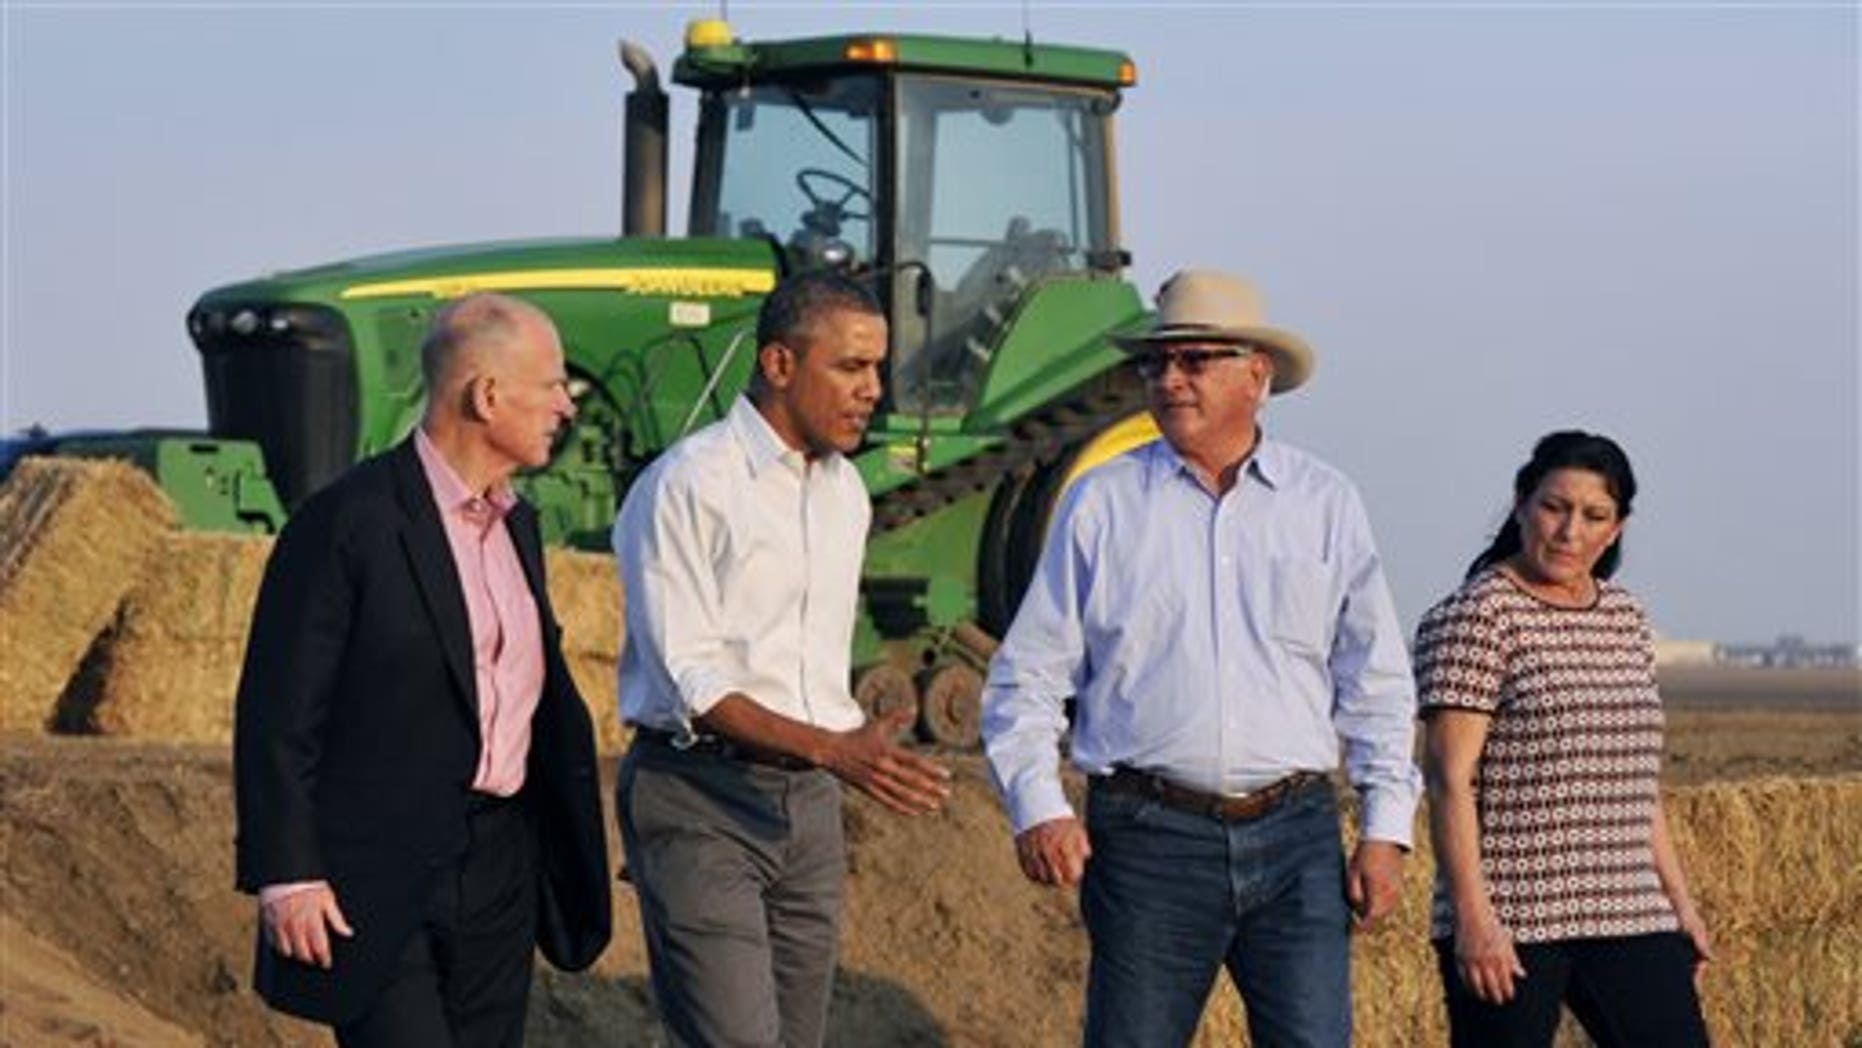 President Barack Obama, second from left, walks and chats with Joe De Bosque, second from right, and his wife Maria Gloria De Bosque, far right, while California governor Jerry Brown walks at the far left, addressing drought issues on the couple's farmland south of Los Banos, Calif. on Friday, Feb. 14, 2014. (AP Photo/The Fresno Bee, Eric Paul Zamora)